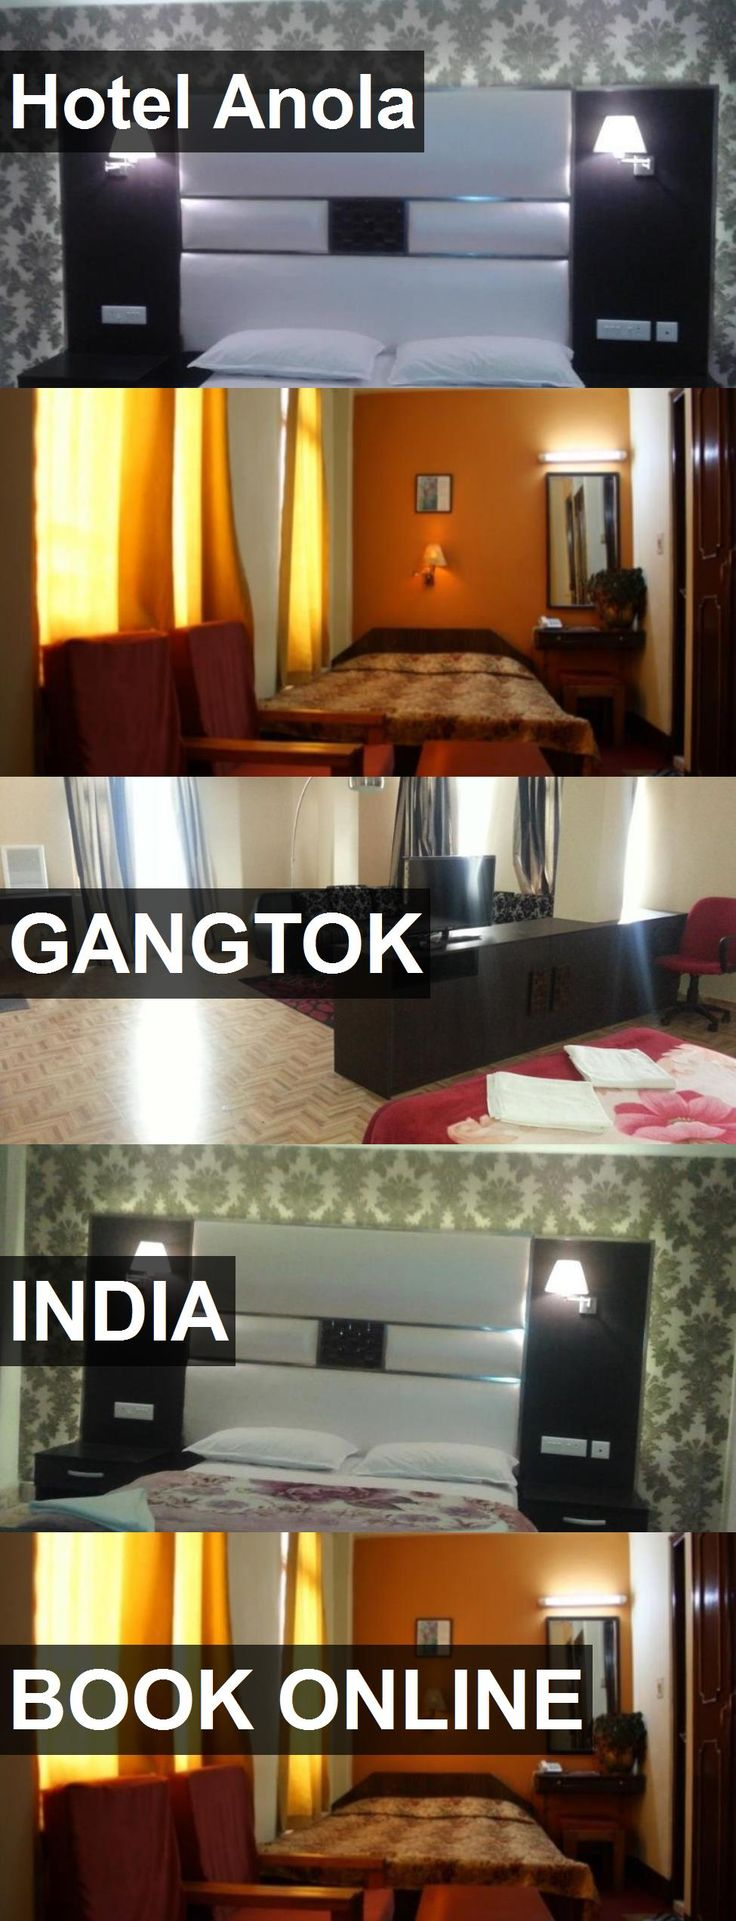 Hotel Hotel Anola in Gangtok, India. For more information, photos, reviews and best prices please follow the link. #India #Gangtok #HotelAnola #hotel #travel #vacation